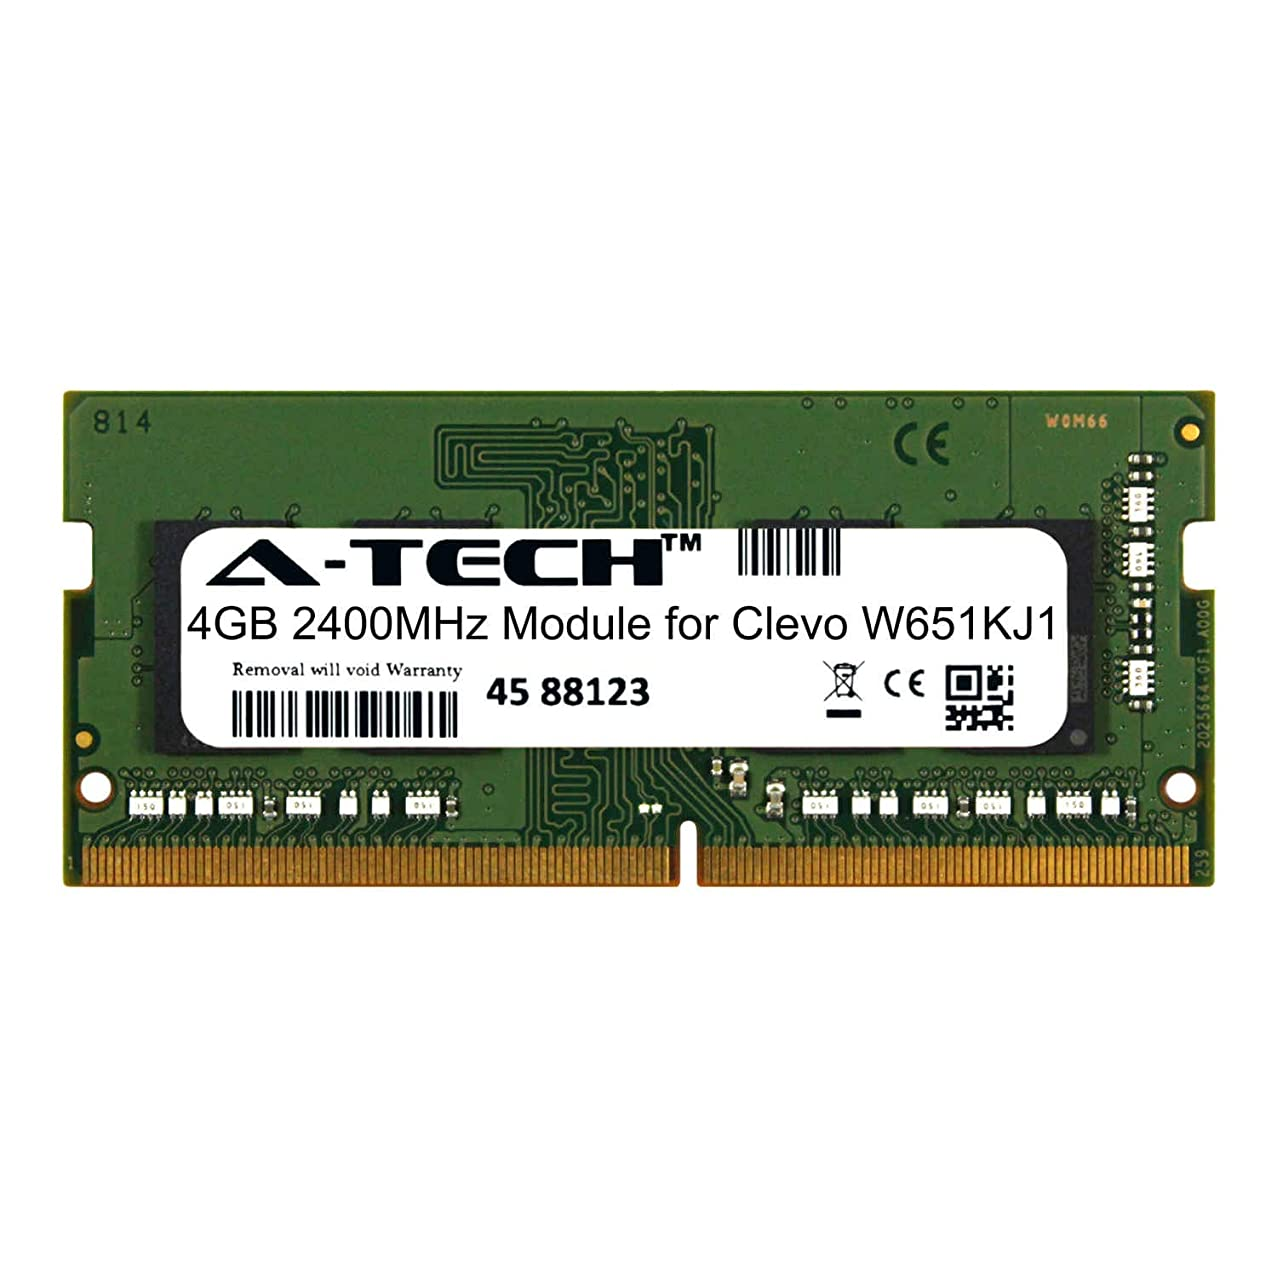 A-Tech 4GB Module for Clevo W651KJ1 Laptop & Notebook Compatible DDR4 2400Mhz Memory Ram (ATMS390928A25824X1)